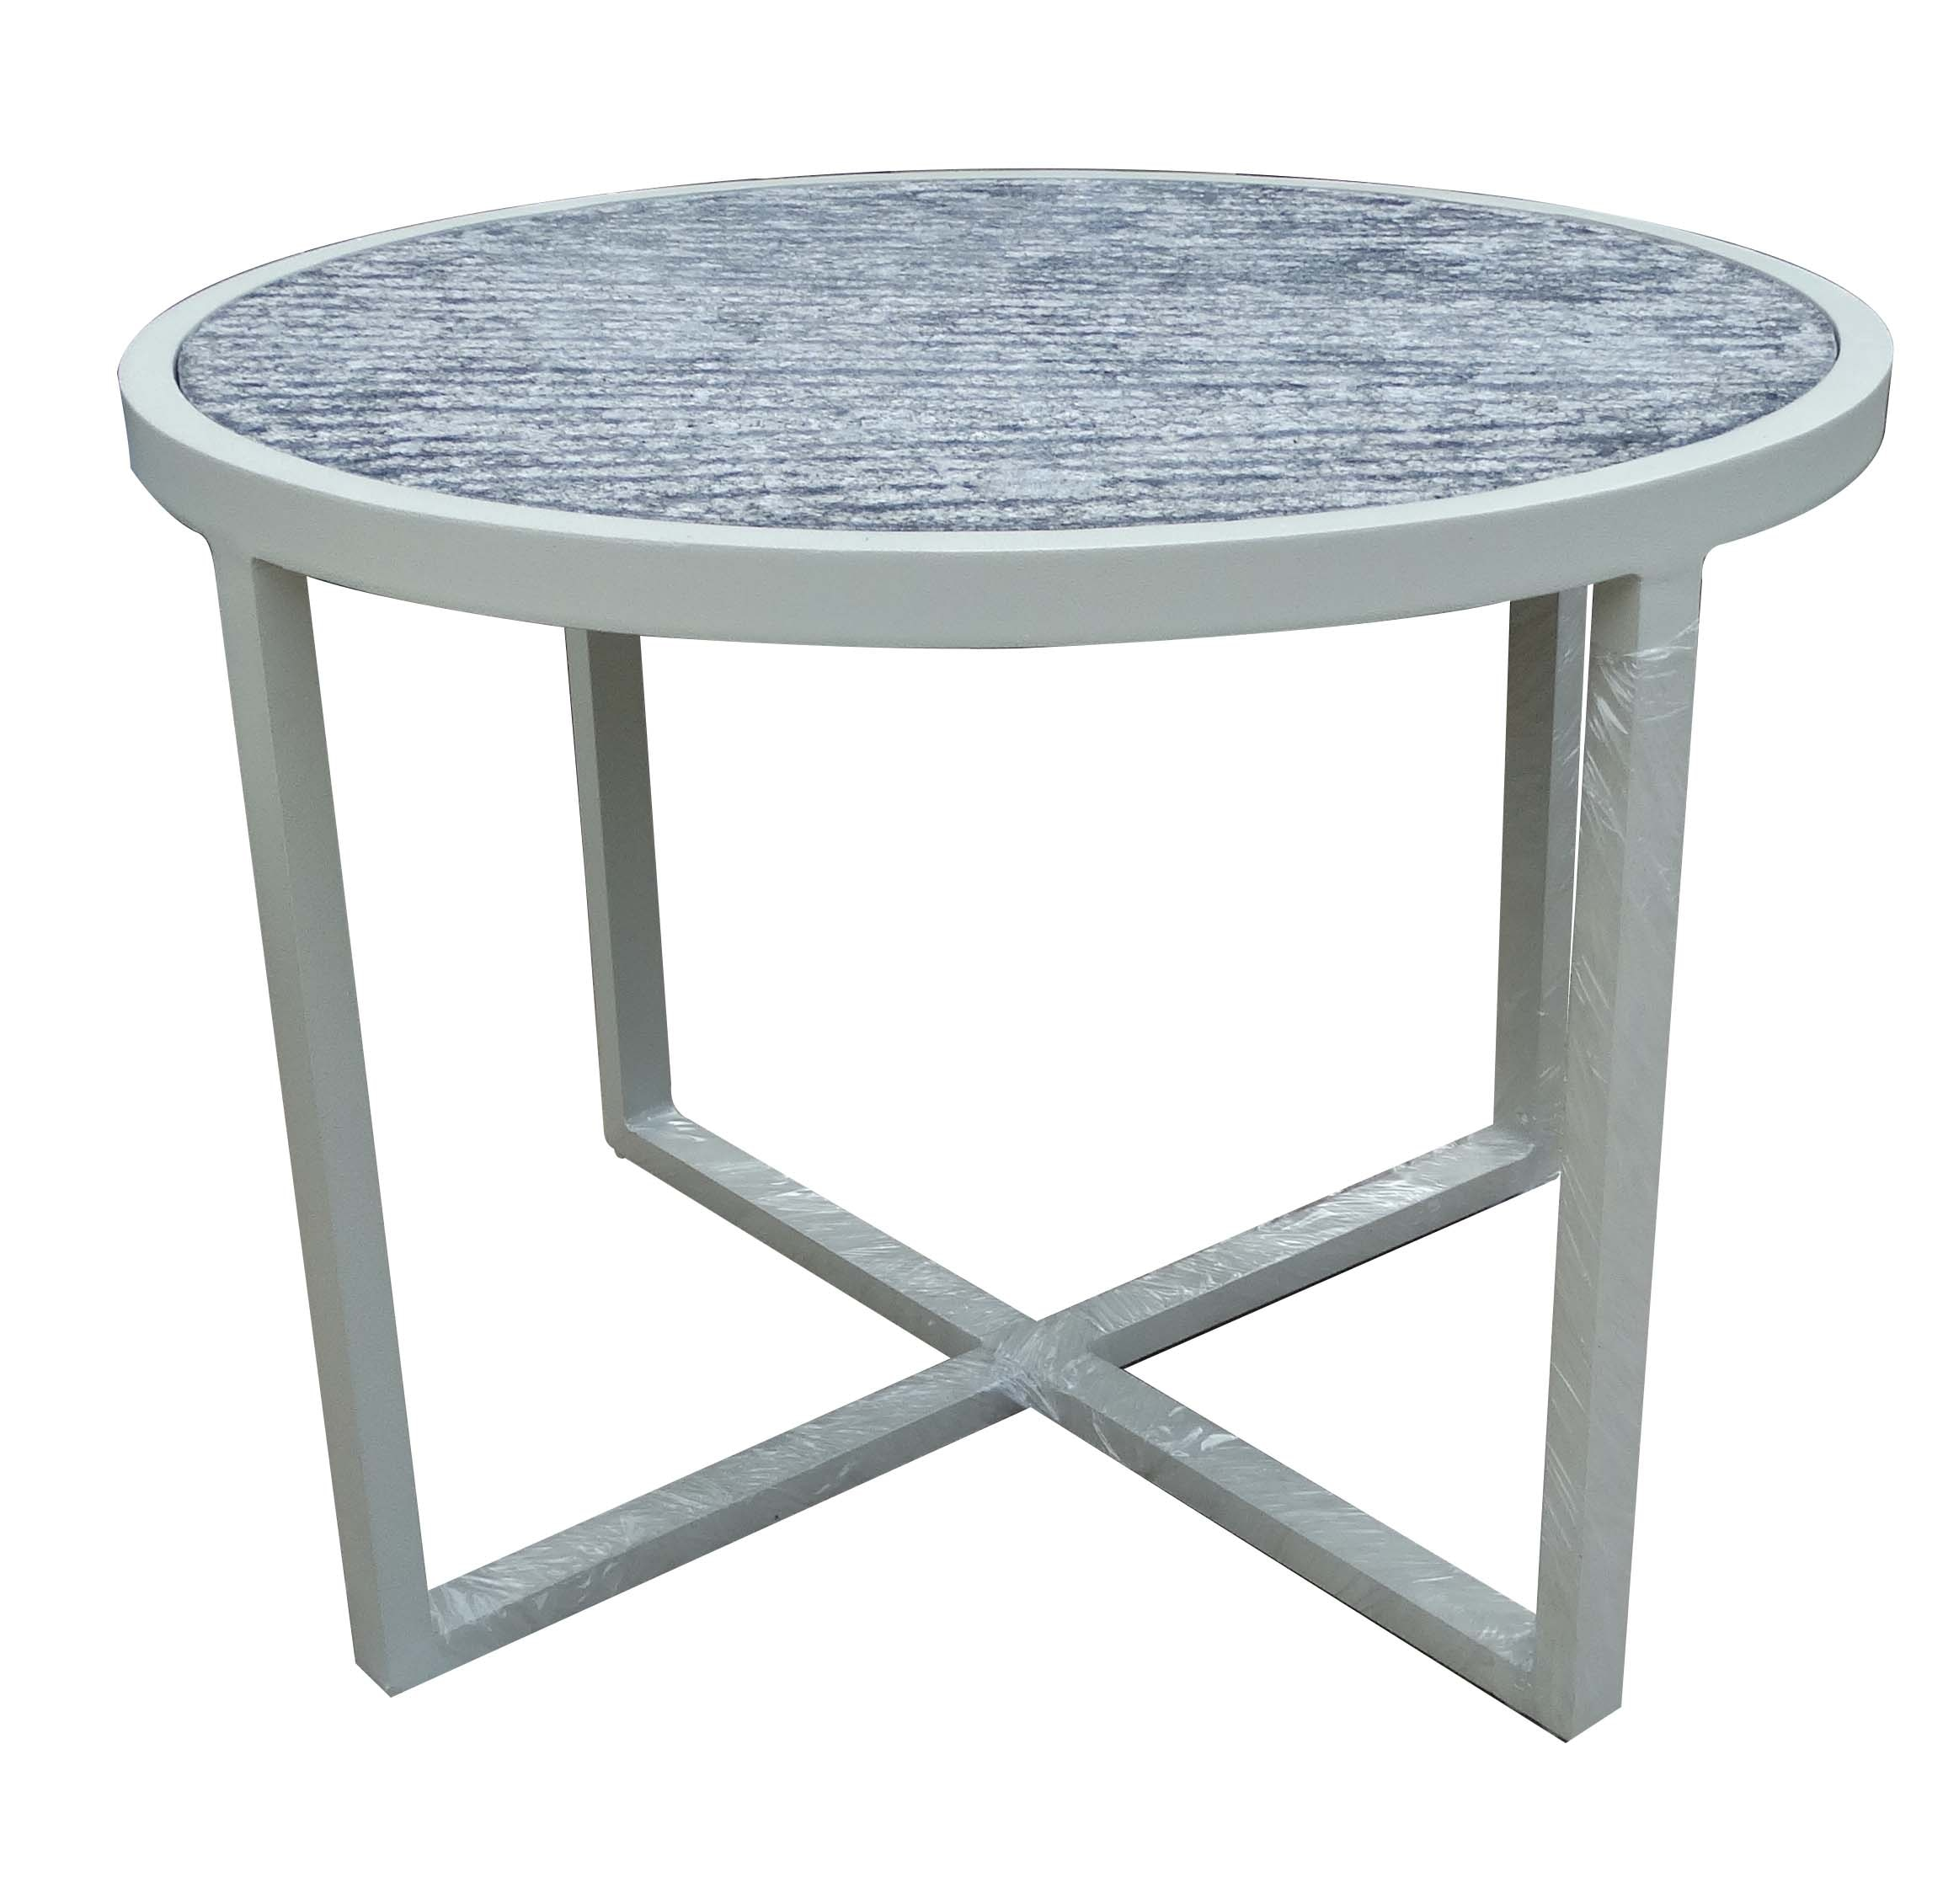 Round table with powder coated frame